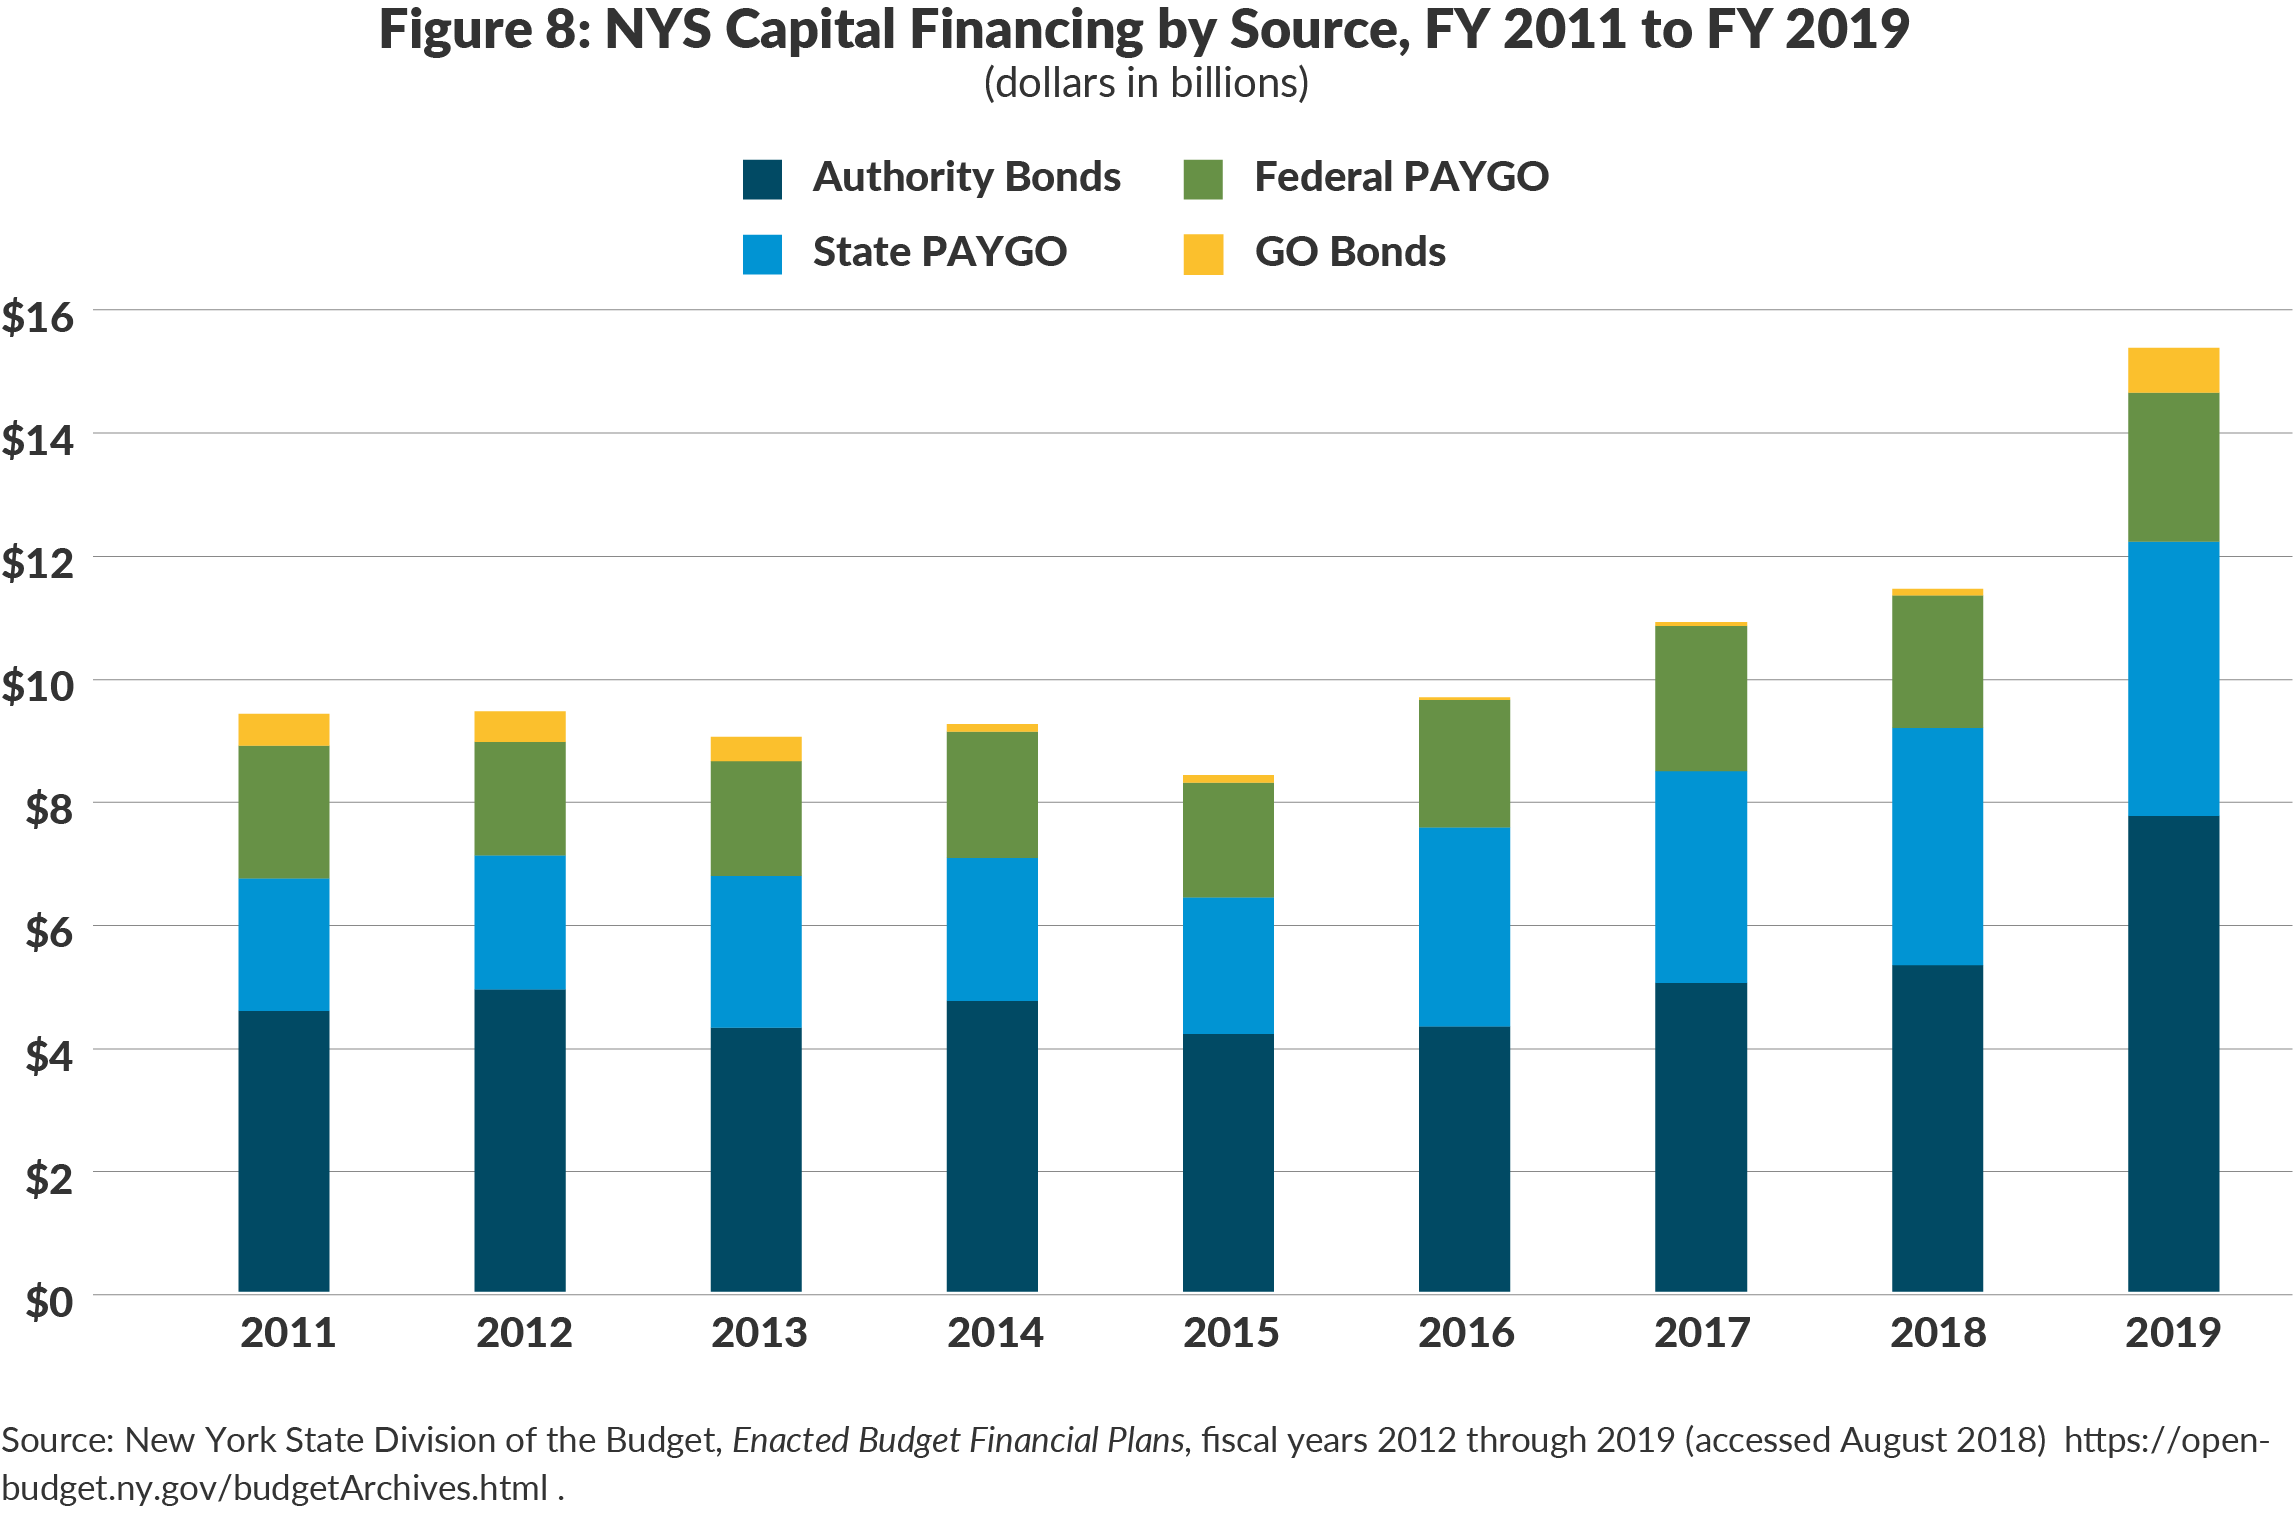 Figure 8: NYS Capital Financing by Source, FY 2011 to FY 2019